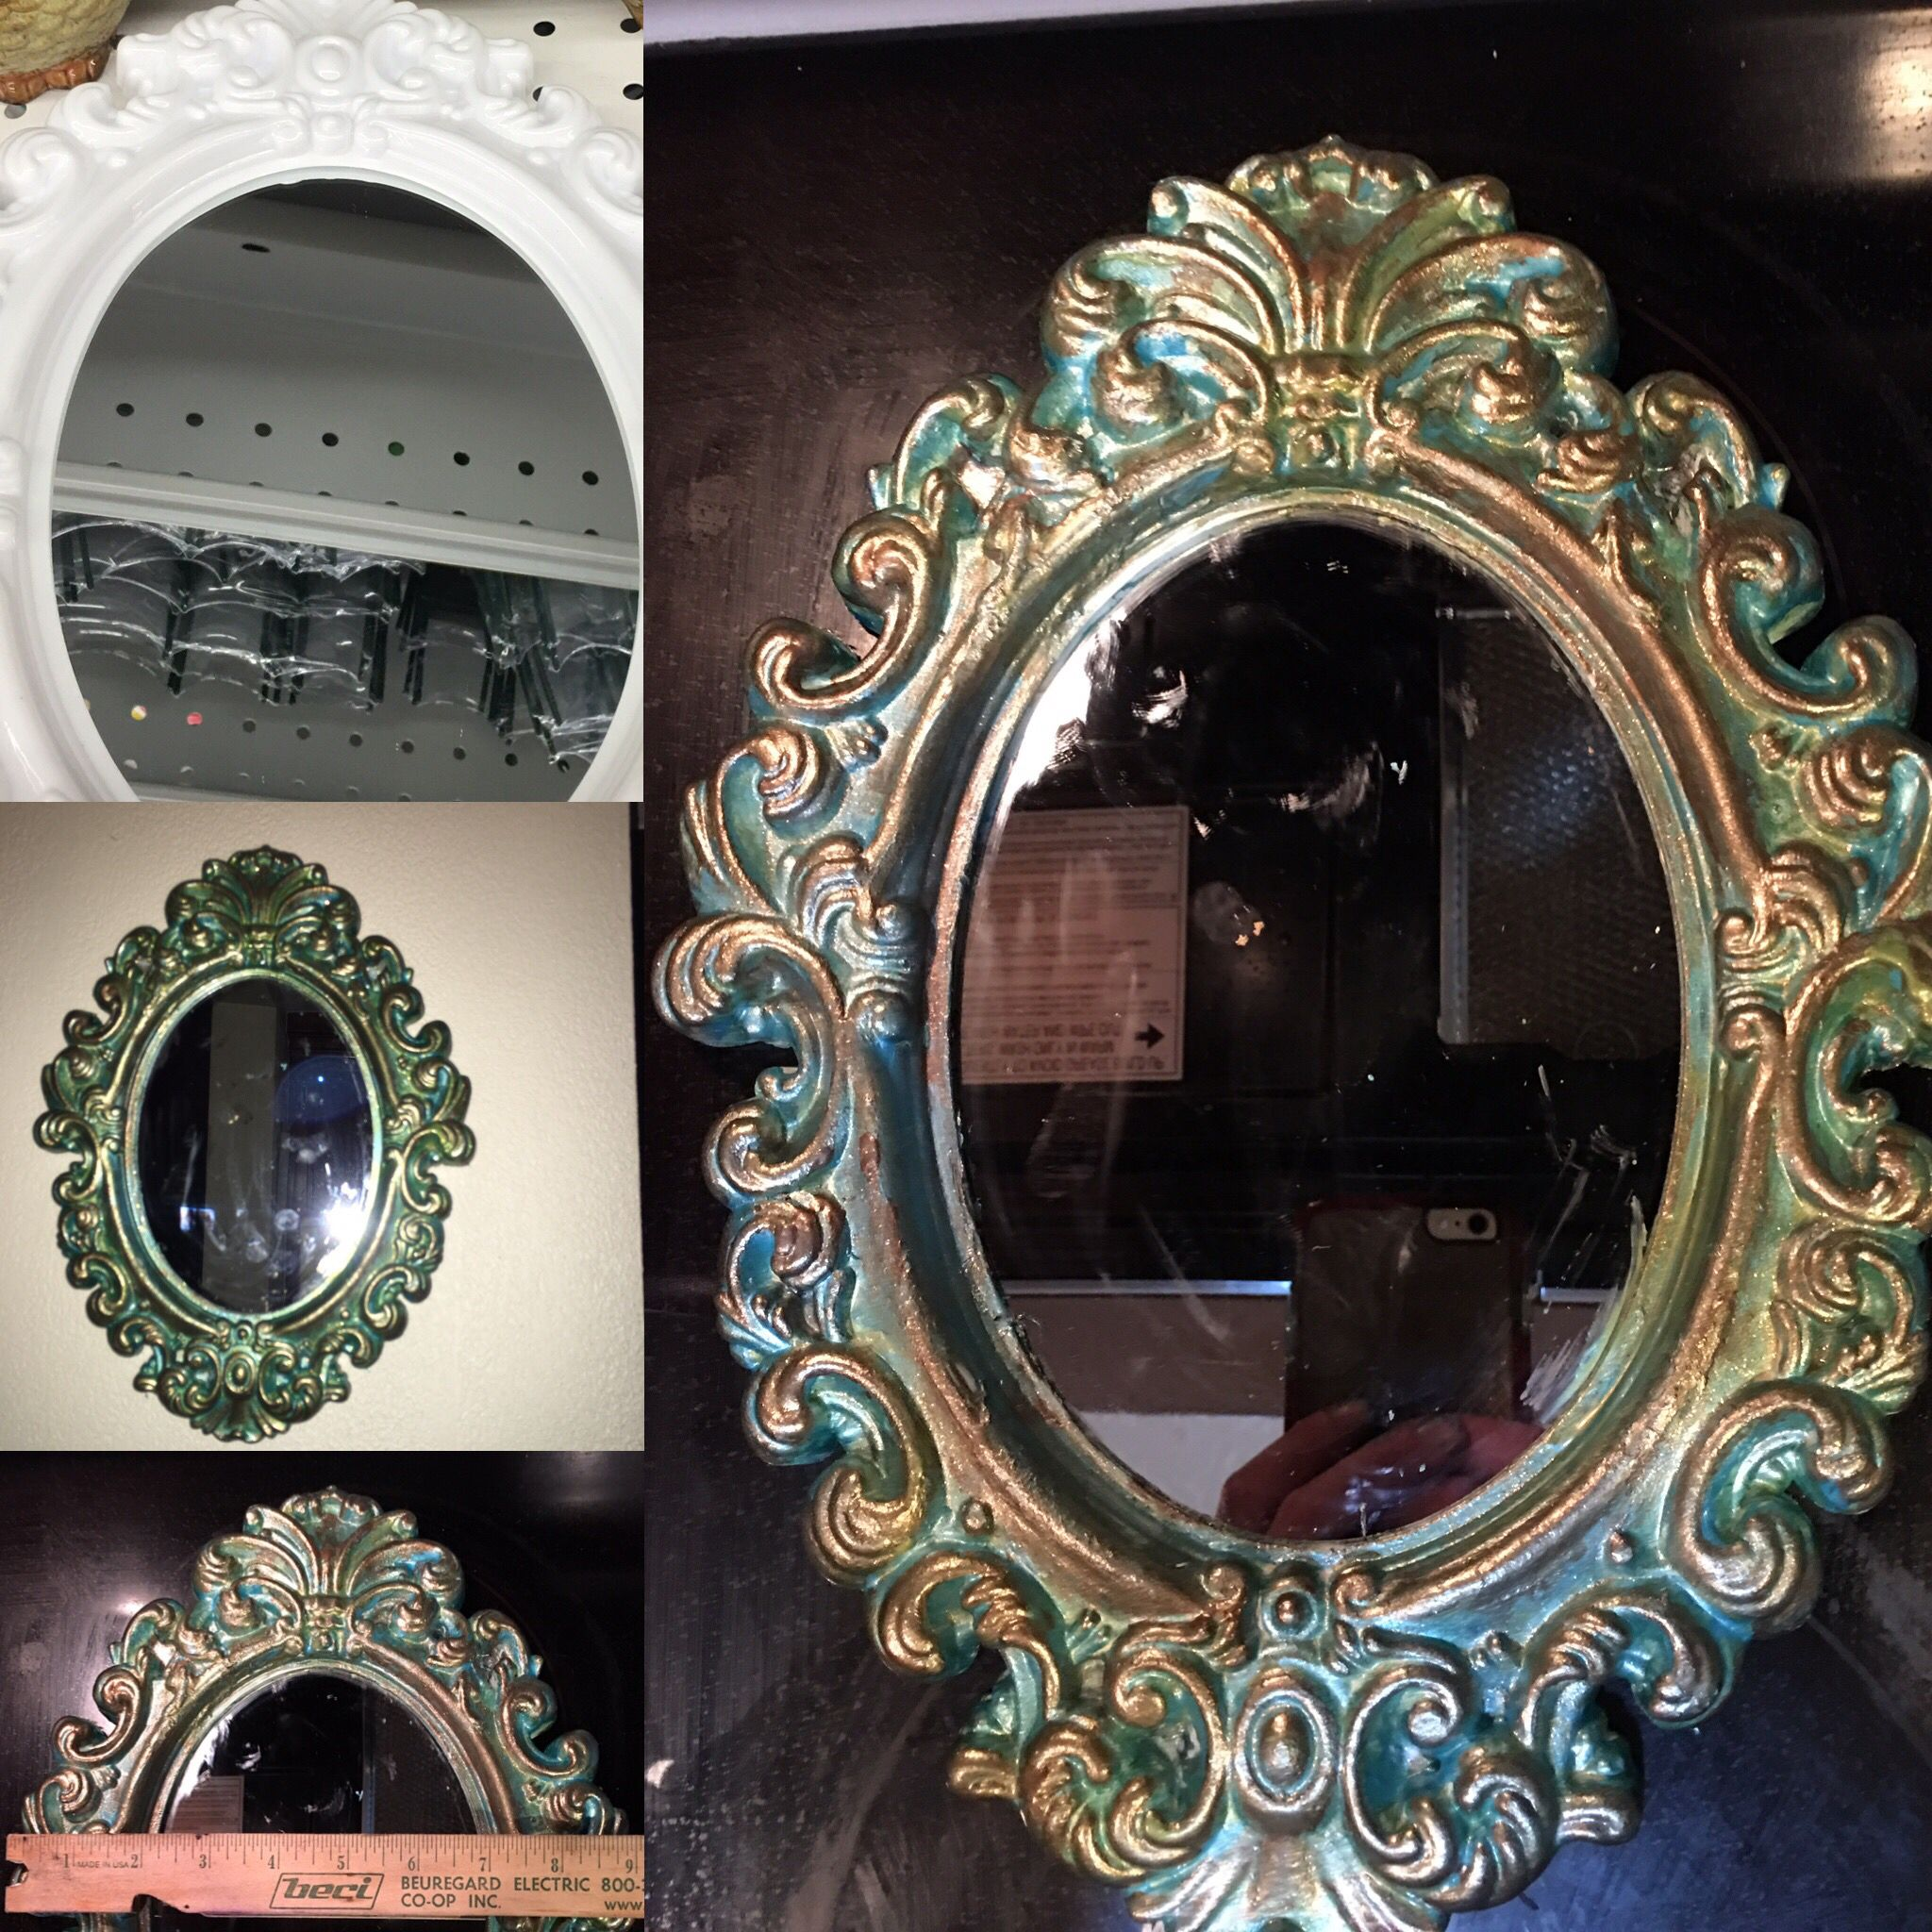 99 Cents Store Mirror From Plastic Shiny White To A Cool Green Blue And Bronze Patina Esq Look Dollar Store Diy 99 Cent Store Dollar Stores